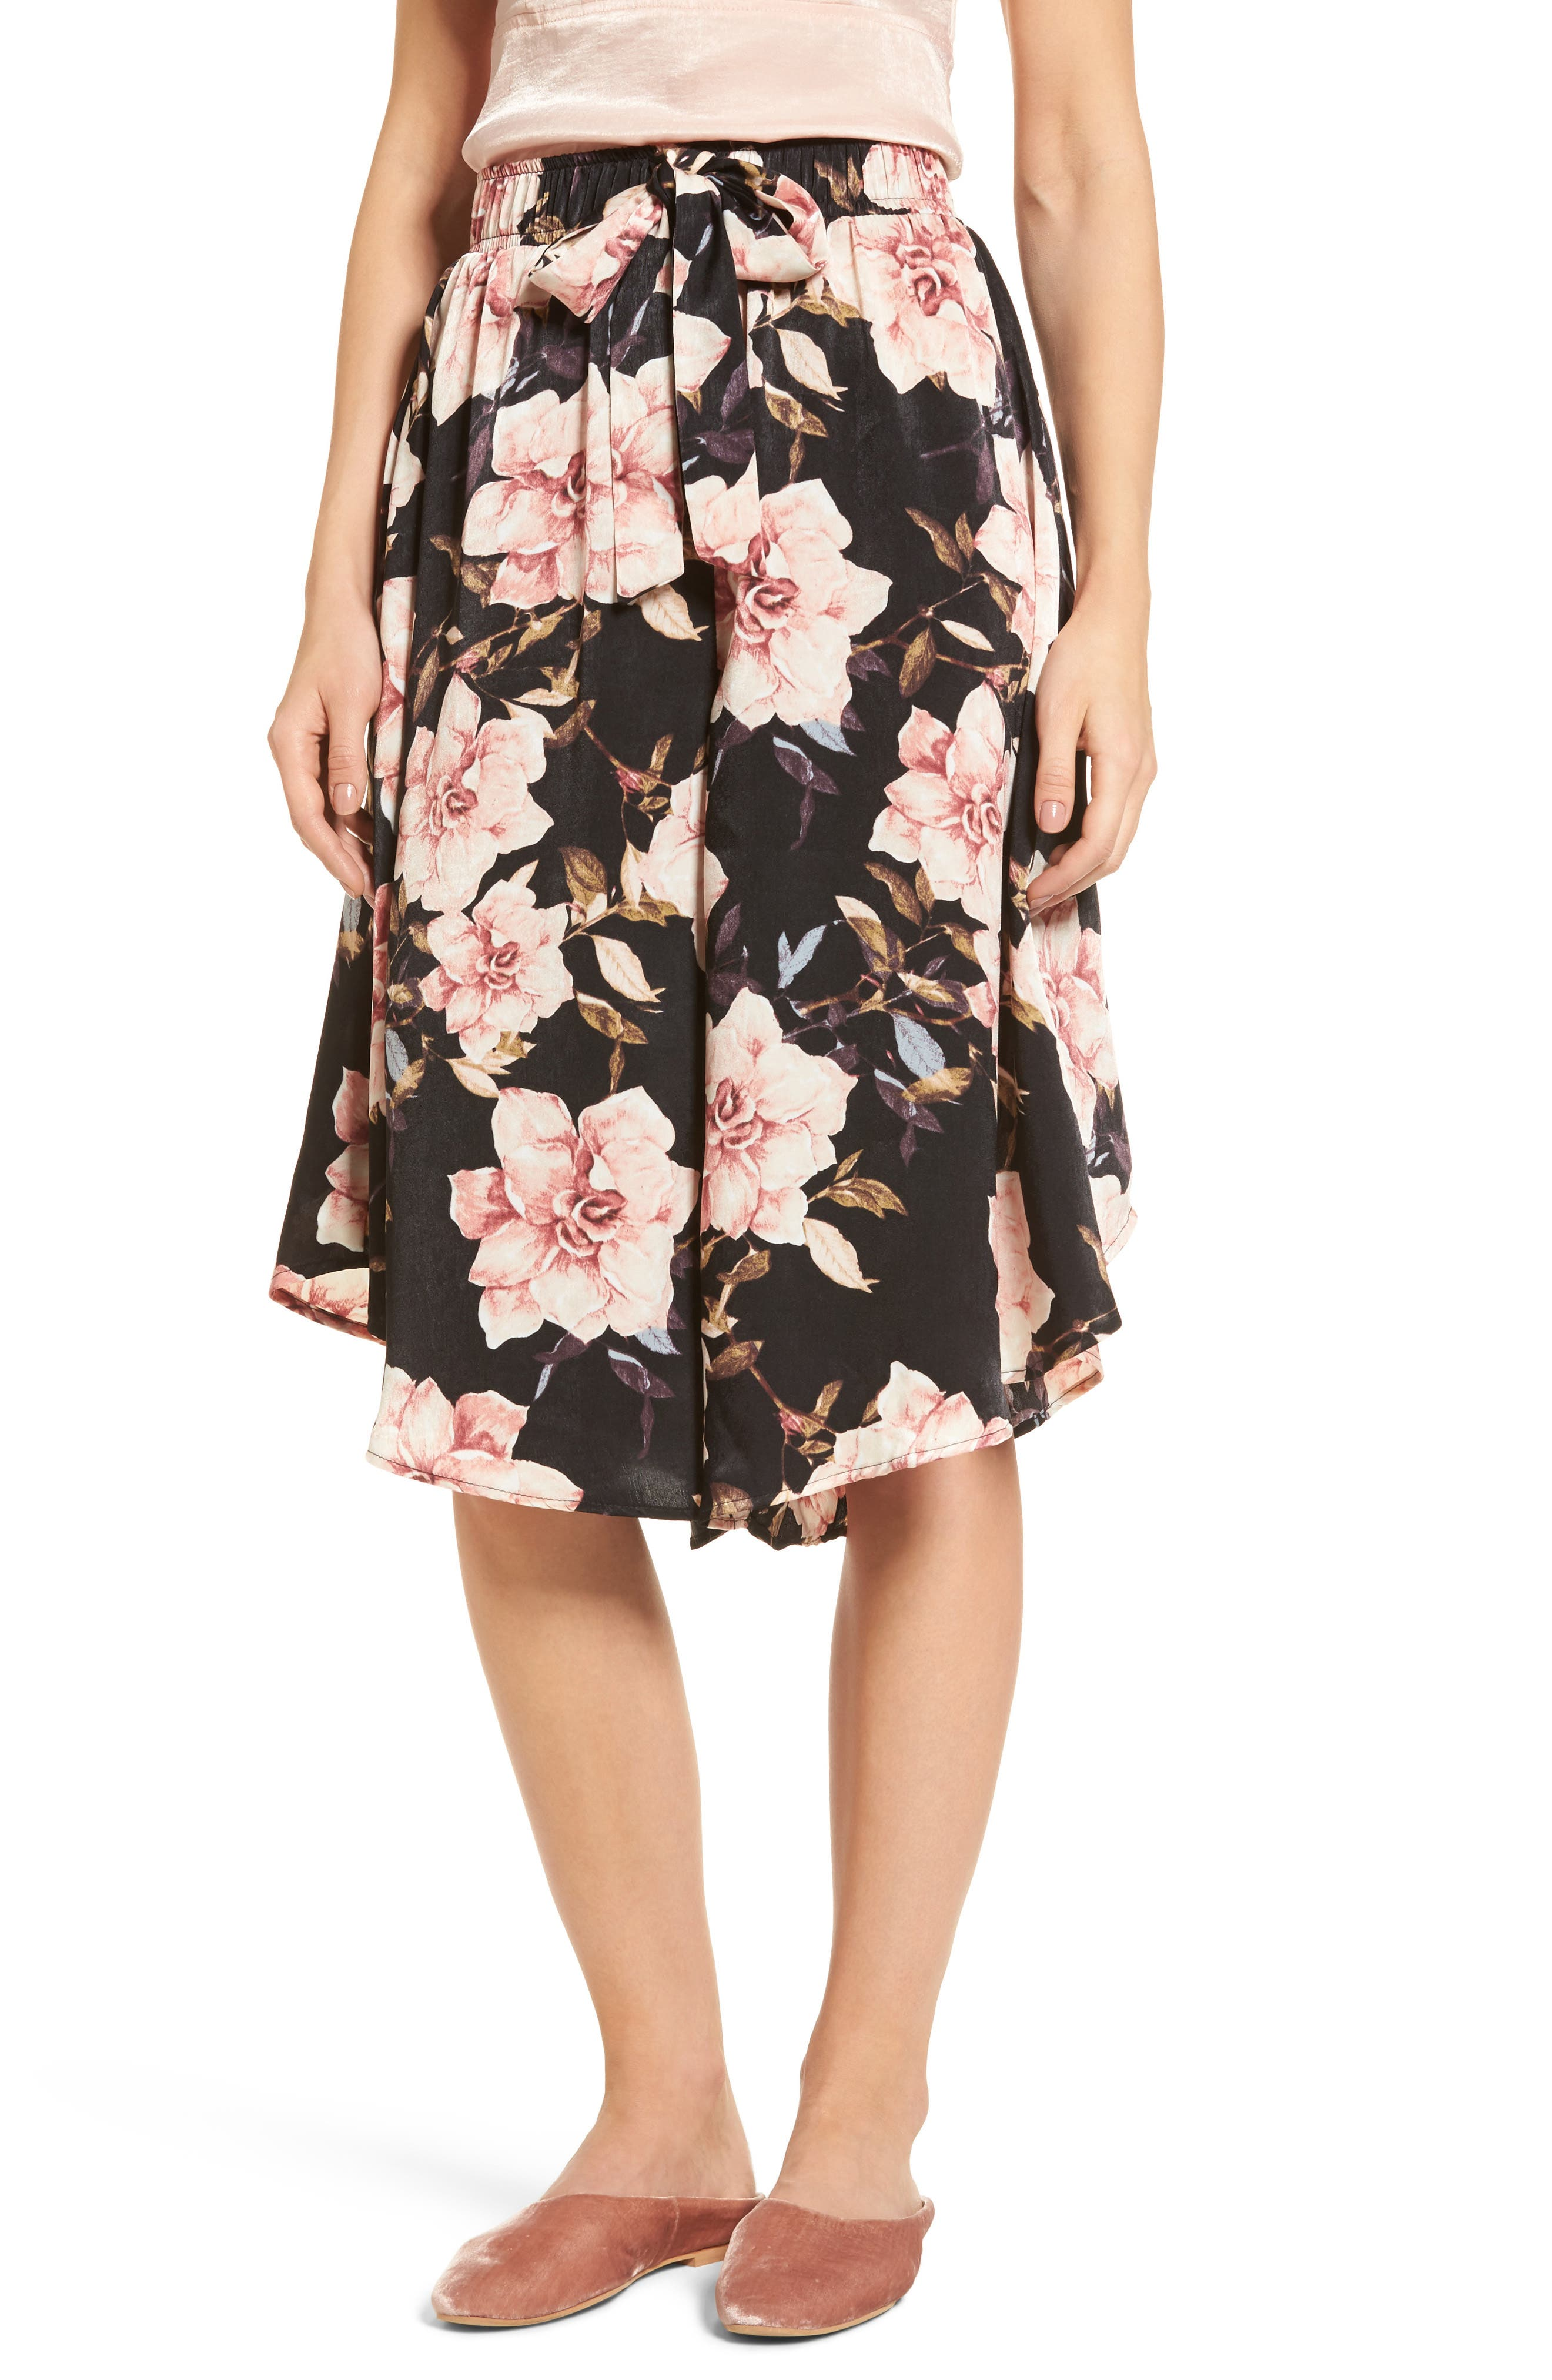 Floral Culottes,                             Main thumbnail 1, color,                             Black Garden Rose Floral